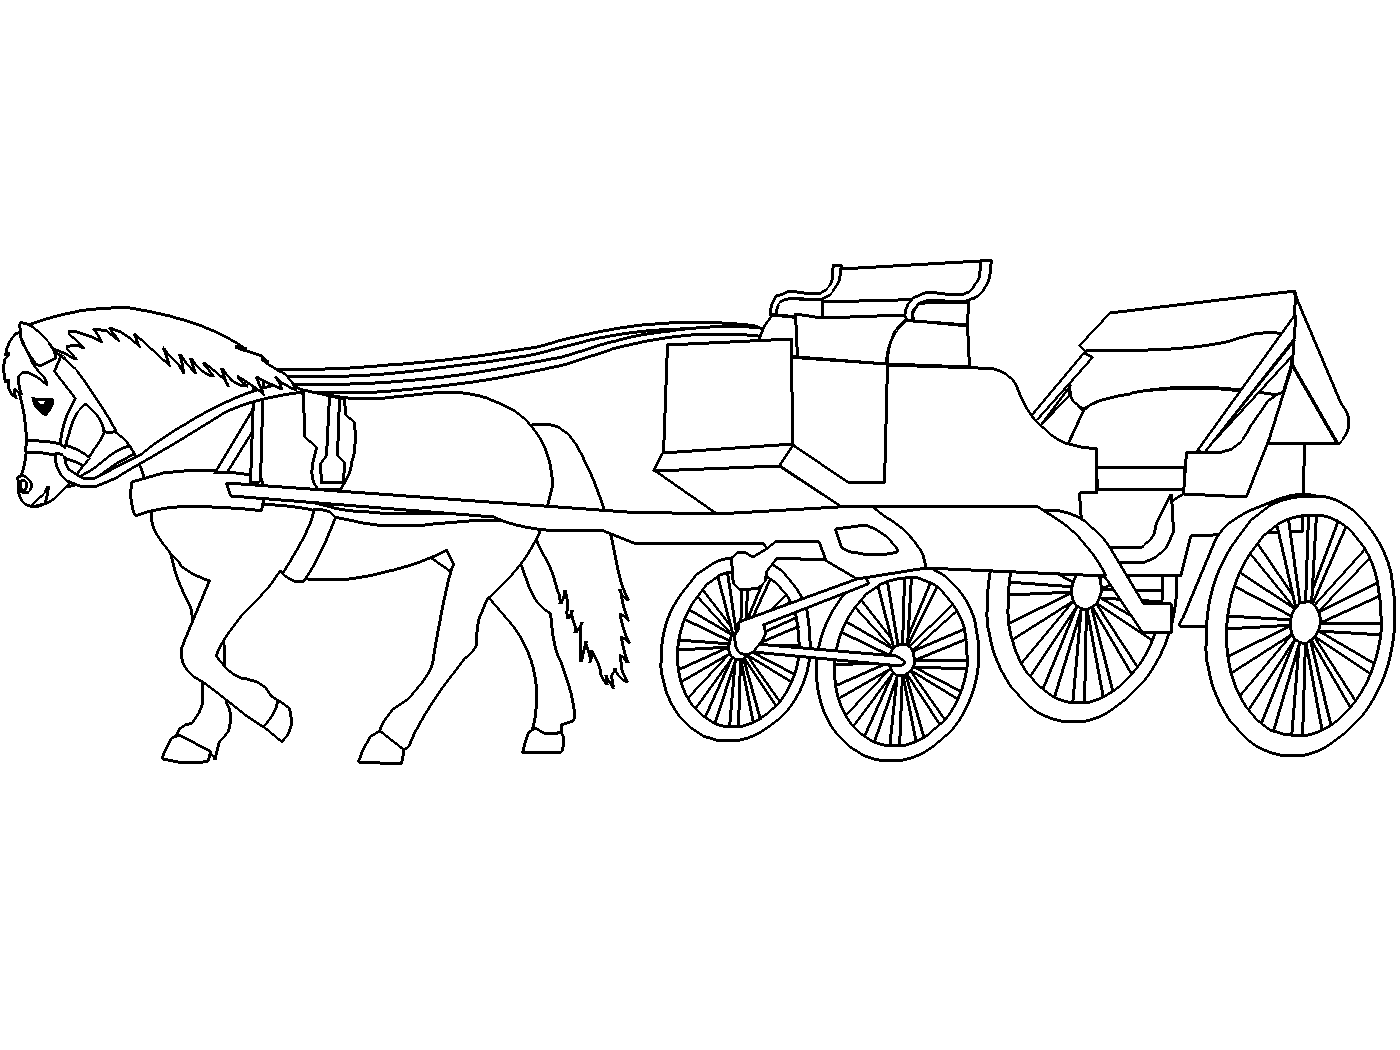 horse and carriage coloring pages horse and carriage coloring pages free coloringpages2019 coloring carriage horse and pages